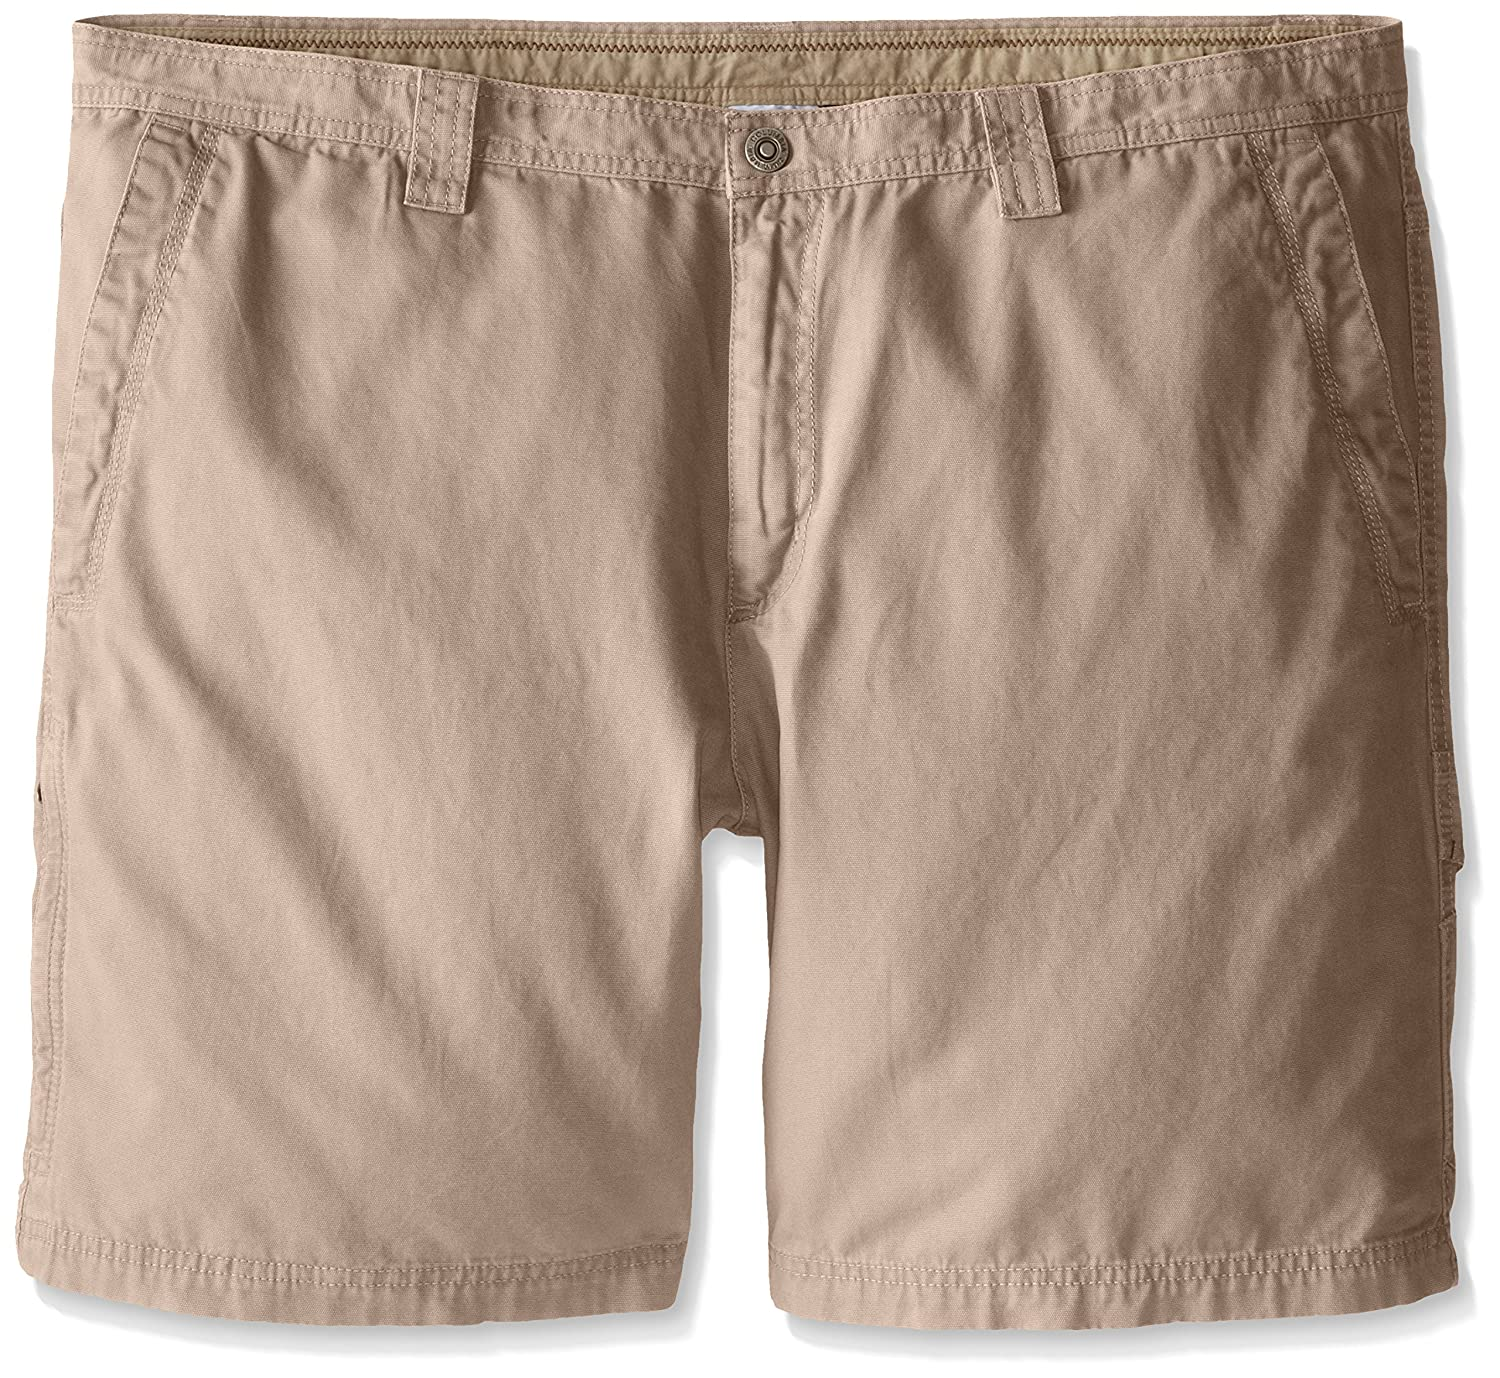 Columbia Men's Big & Tall Ultimate Roc Short Columbia Men's Sportswear 1326474